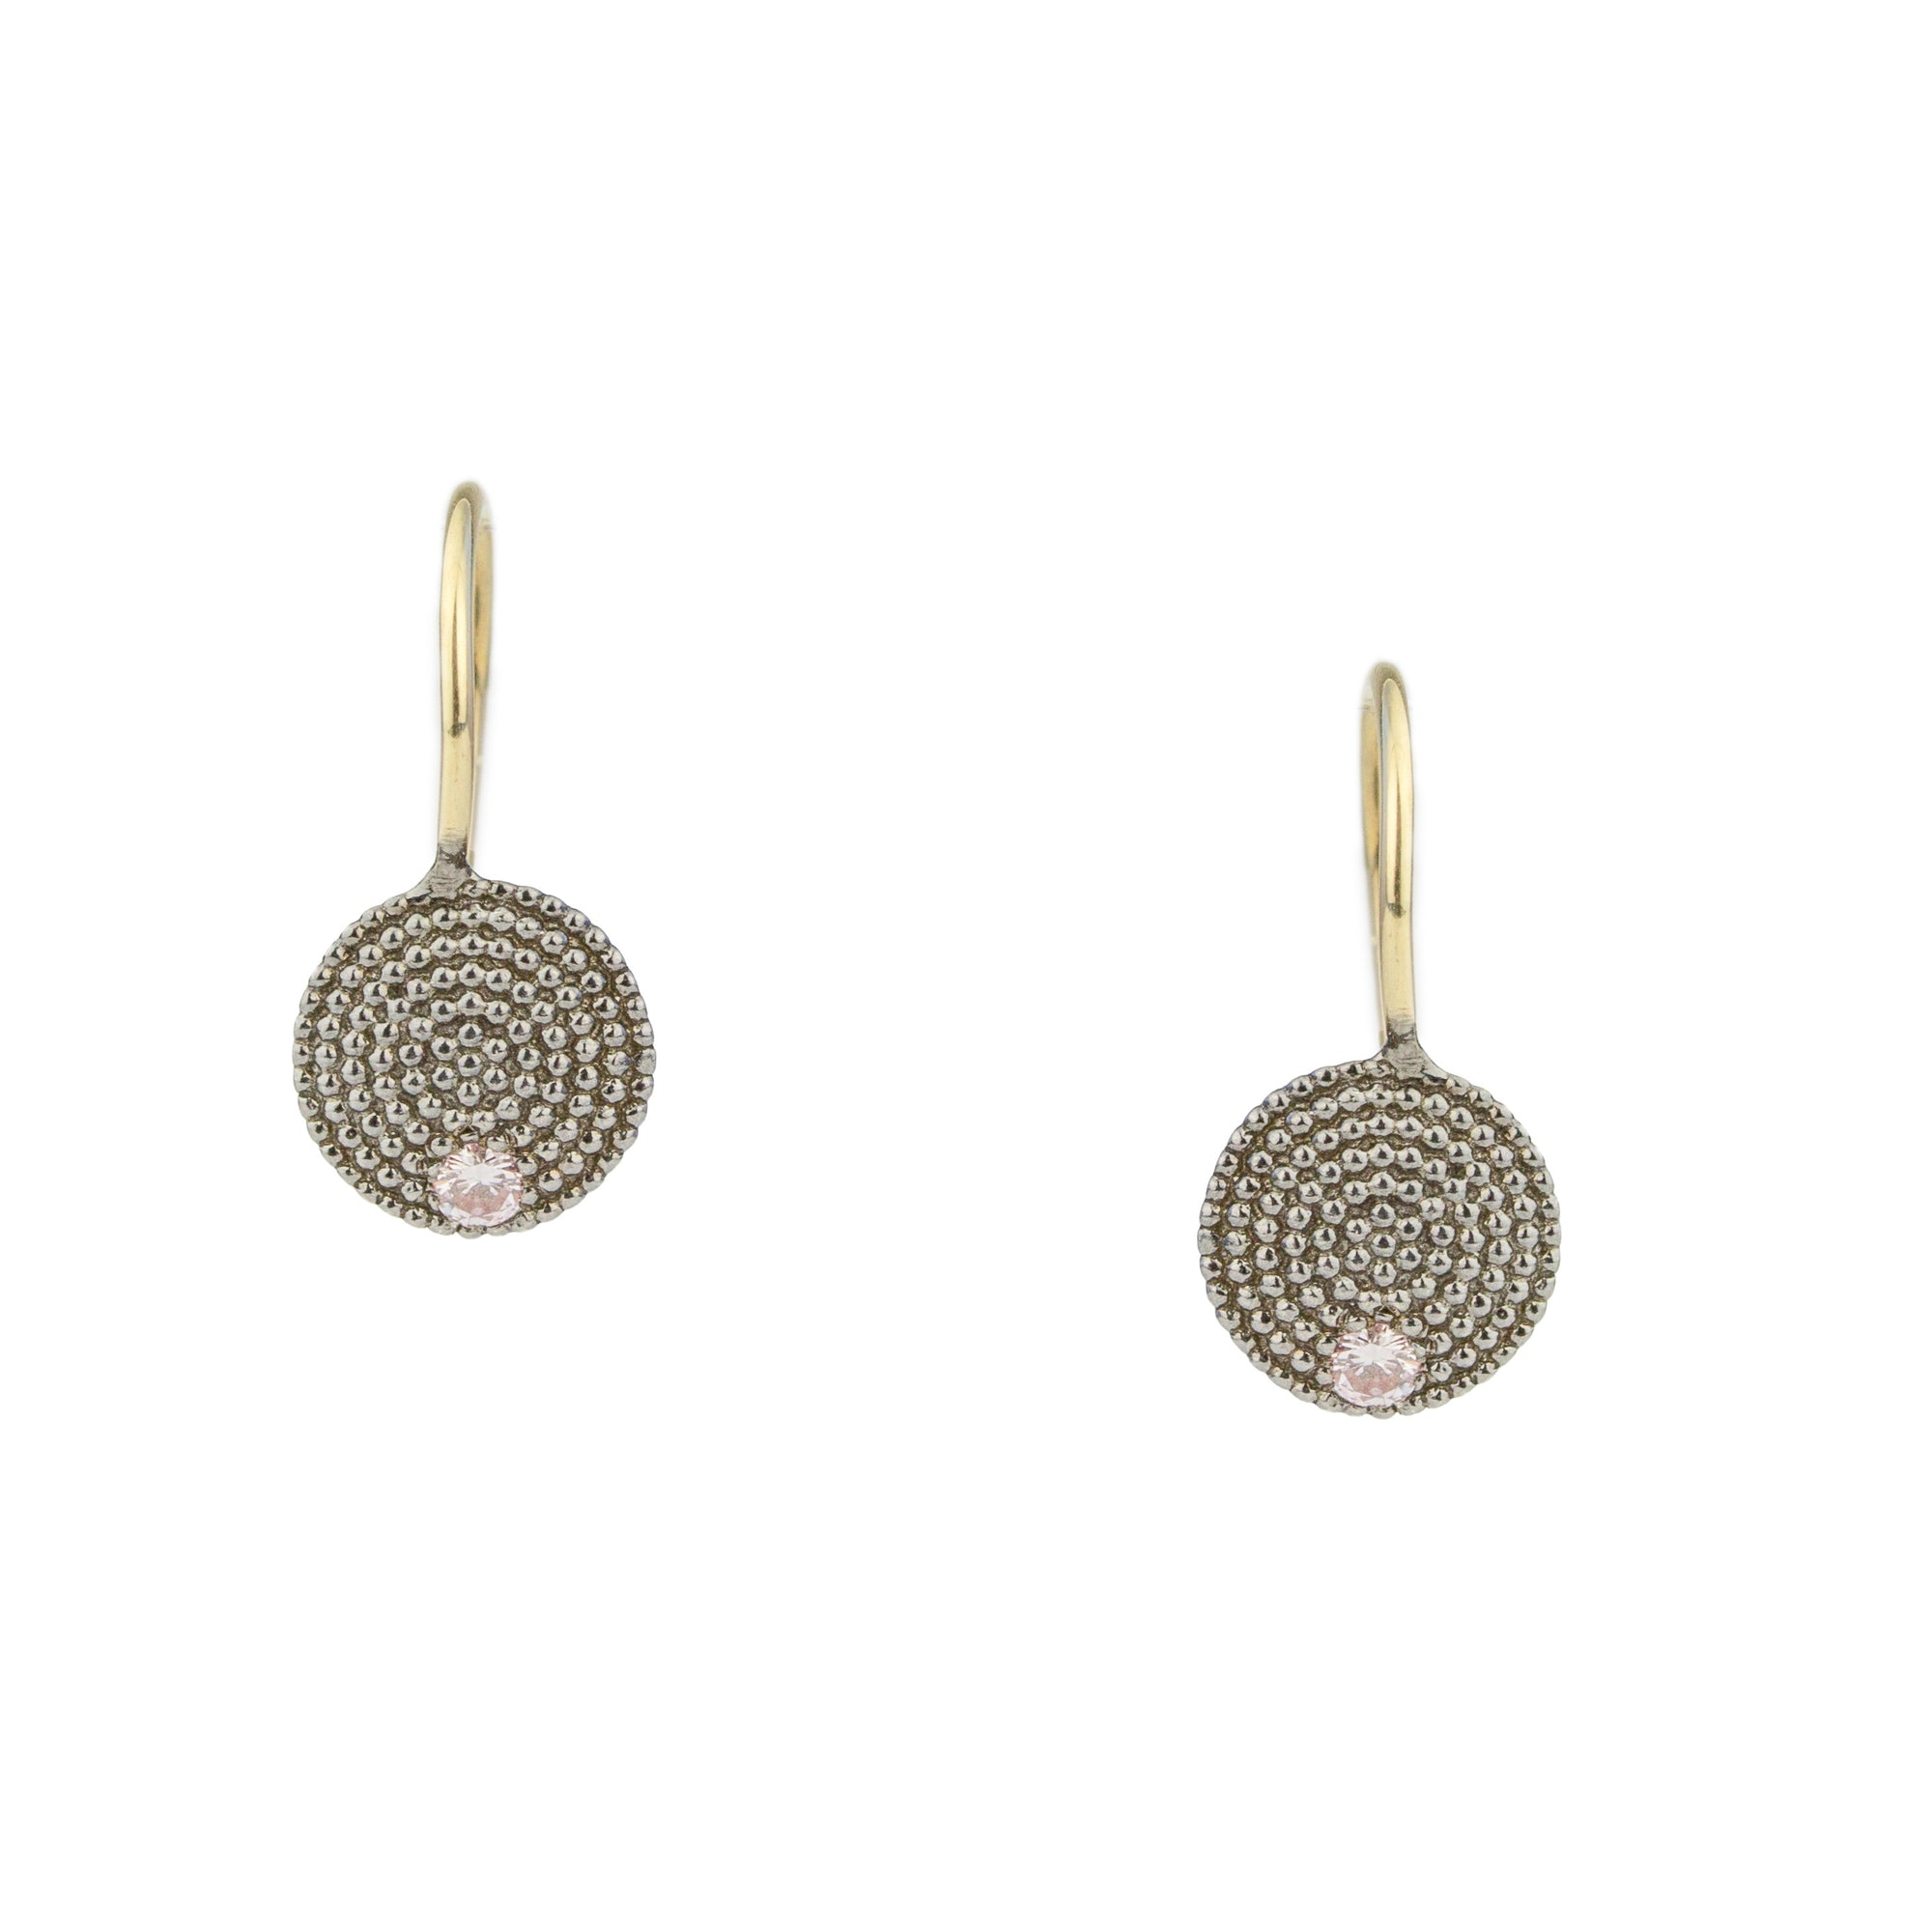 Adin Earrings